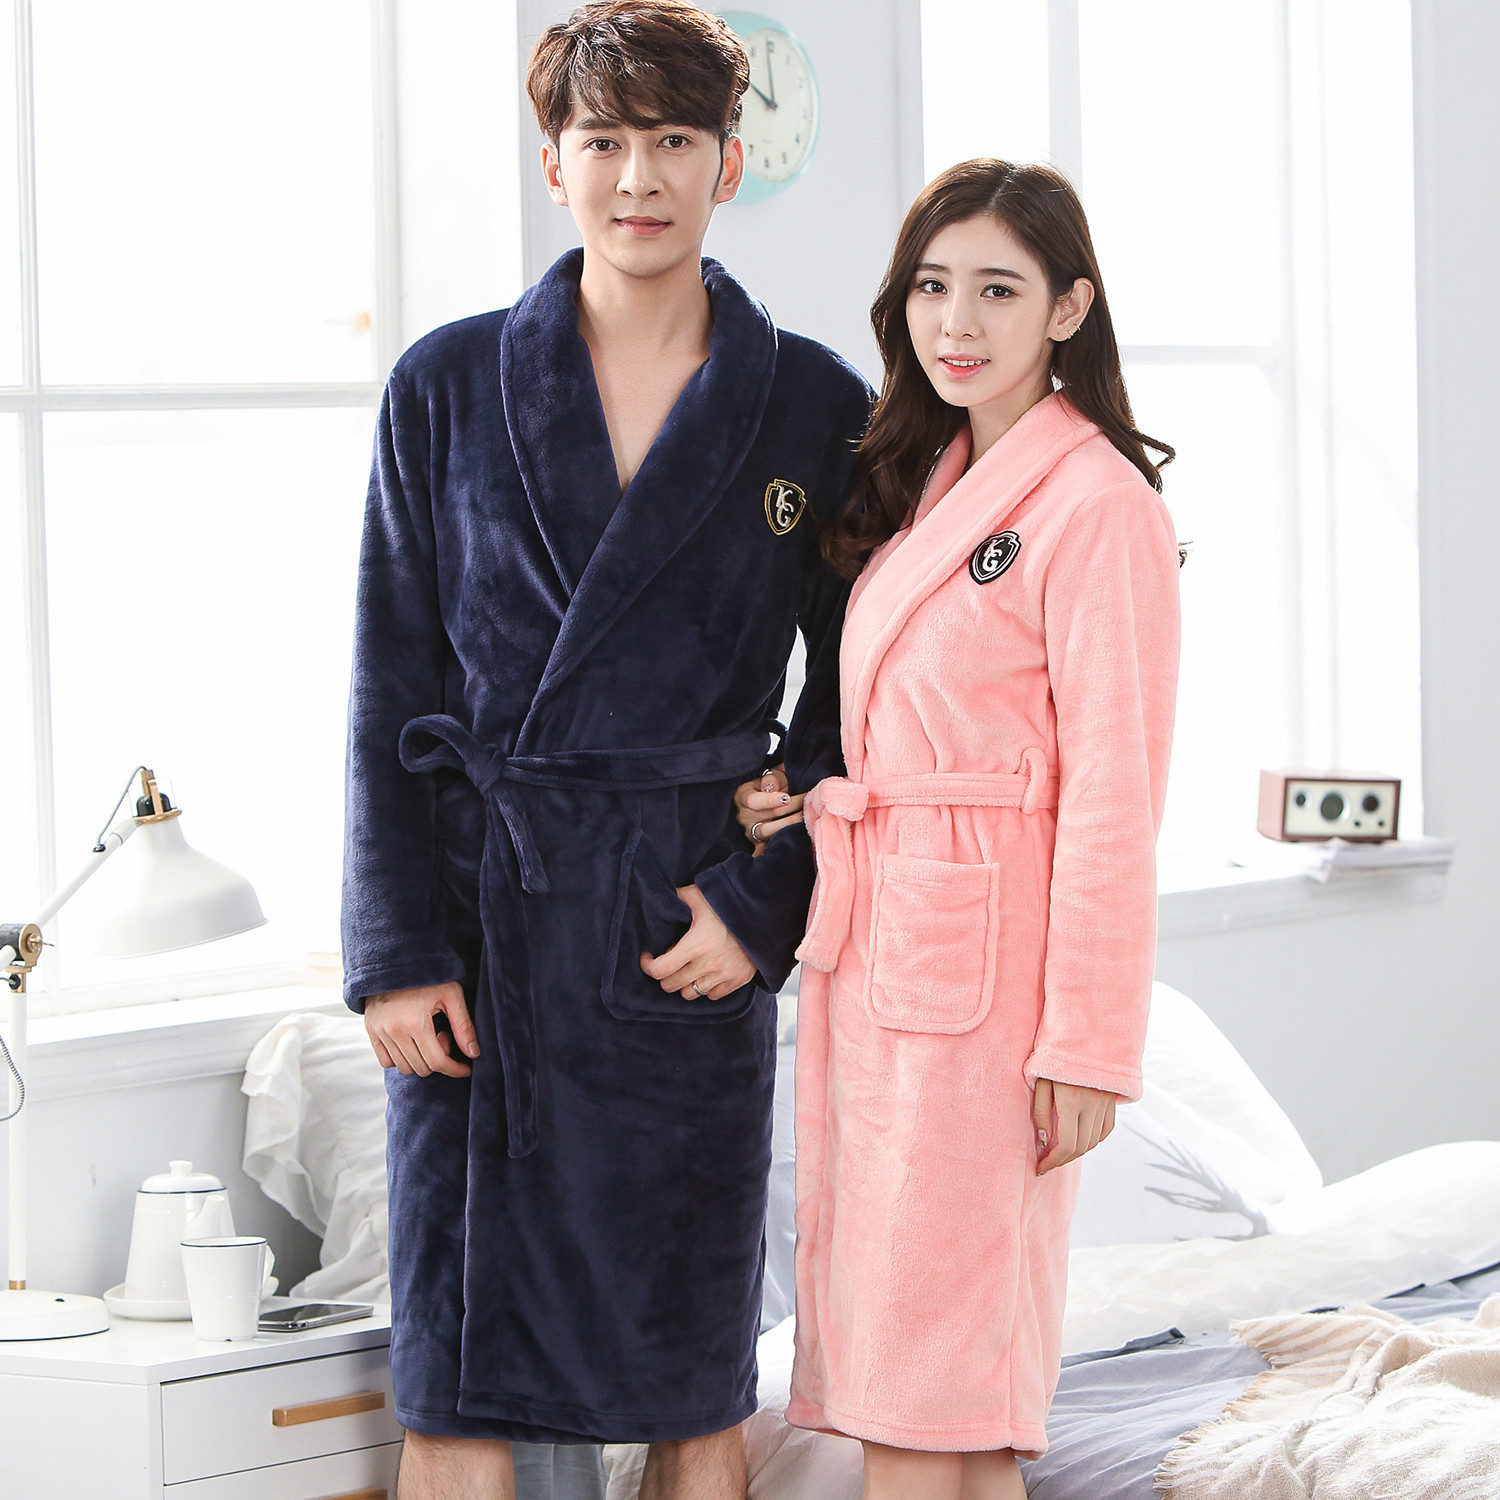 Large Size 3XL For Men&women Robe Coral Fleece Sleepwear Intimate Lingerie Kimono Bathrobe Gown Solid Colour Home Dressing Gown